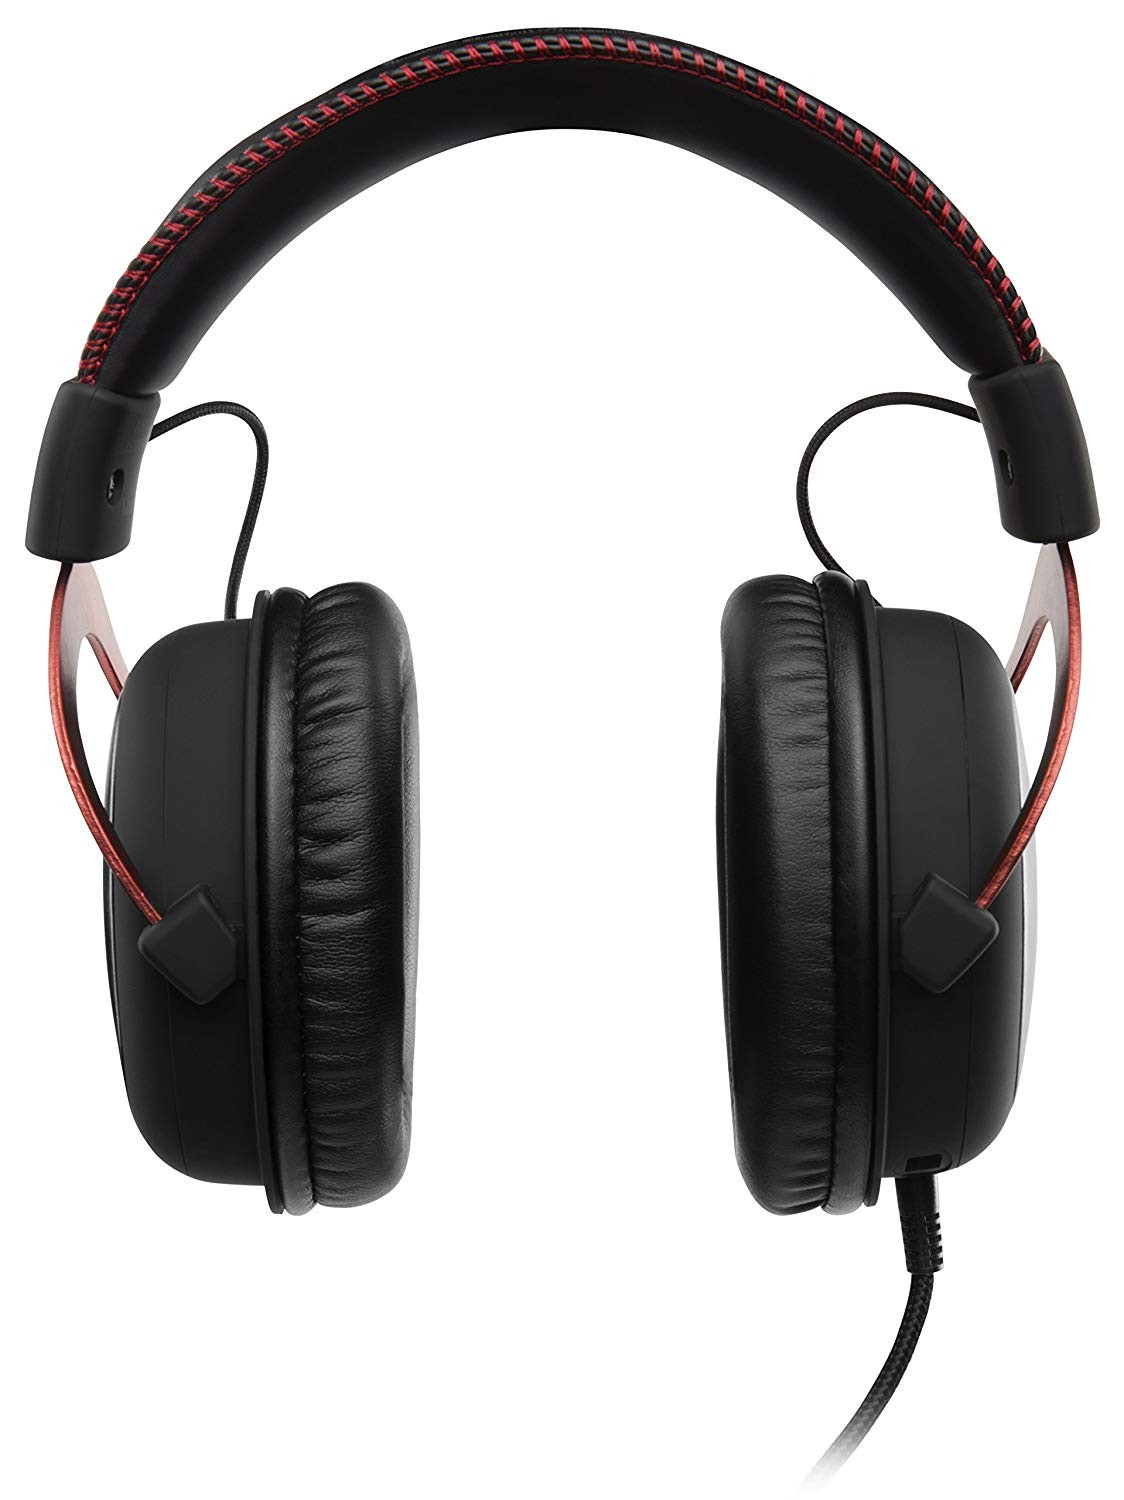 HyperX Cloud II Red Gaming Headset - 7.1 Surround Sound